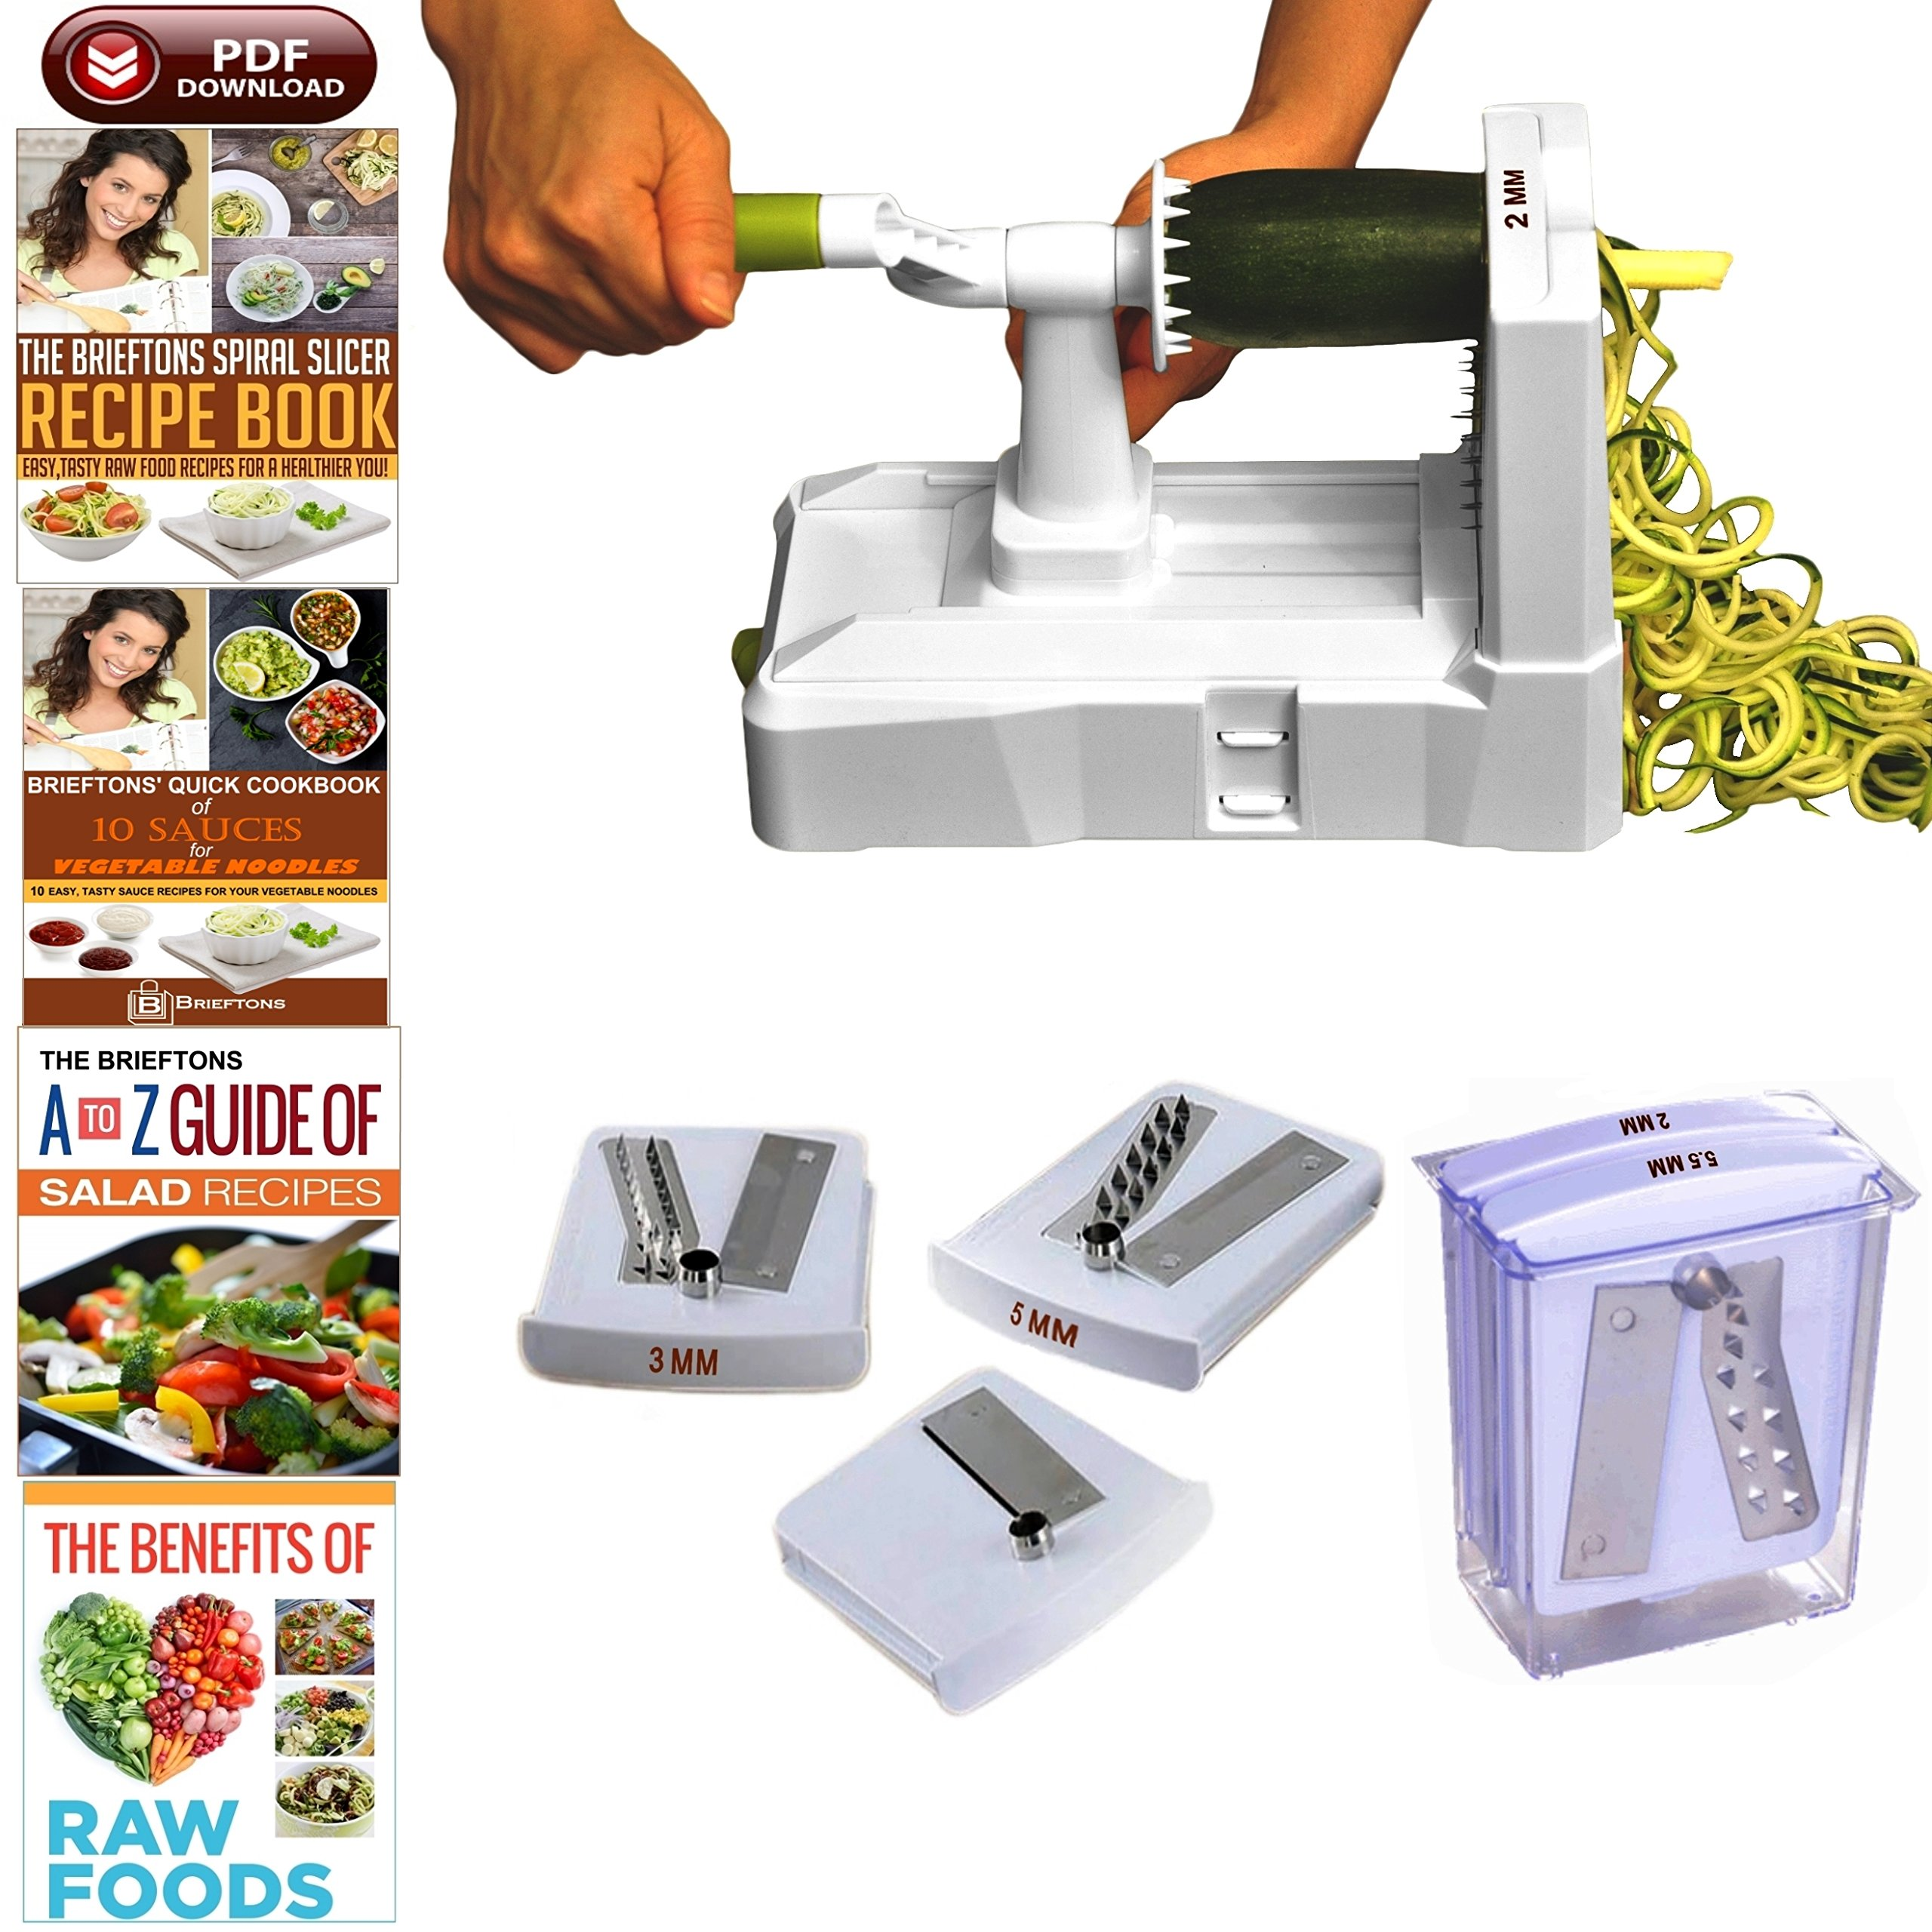 Brieftons 5-Blade Spiralizer (BR-5B-02): Strongest-and-Heaviest Duty Vegetable Spiral Slicer, Best Veggie Pasta Spaghetti Maker for Low Carb/Paleo/Gluten-Free, With Extra Blade Caddy & 4 Recipe Ebooks by Brieftons (Image #1)